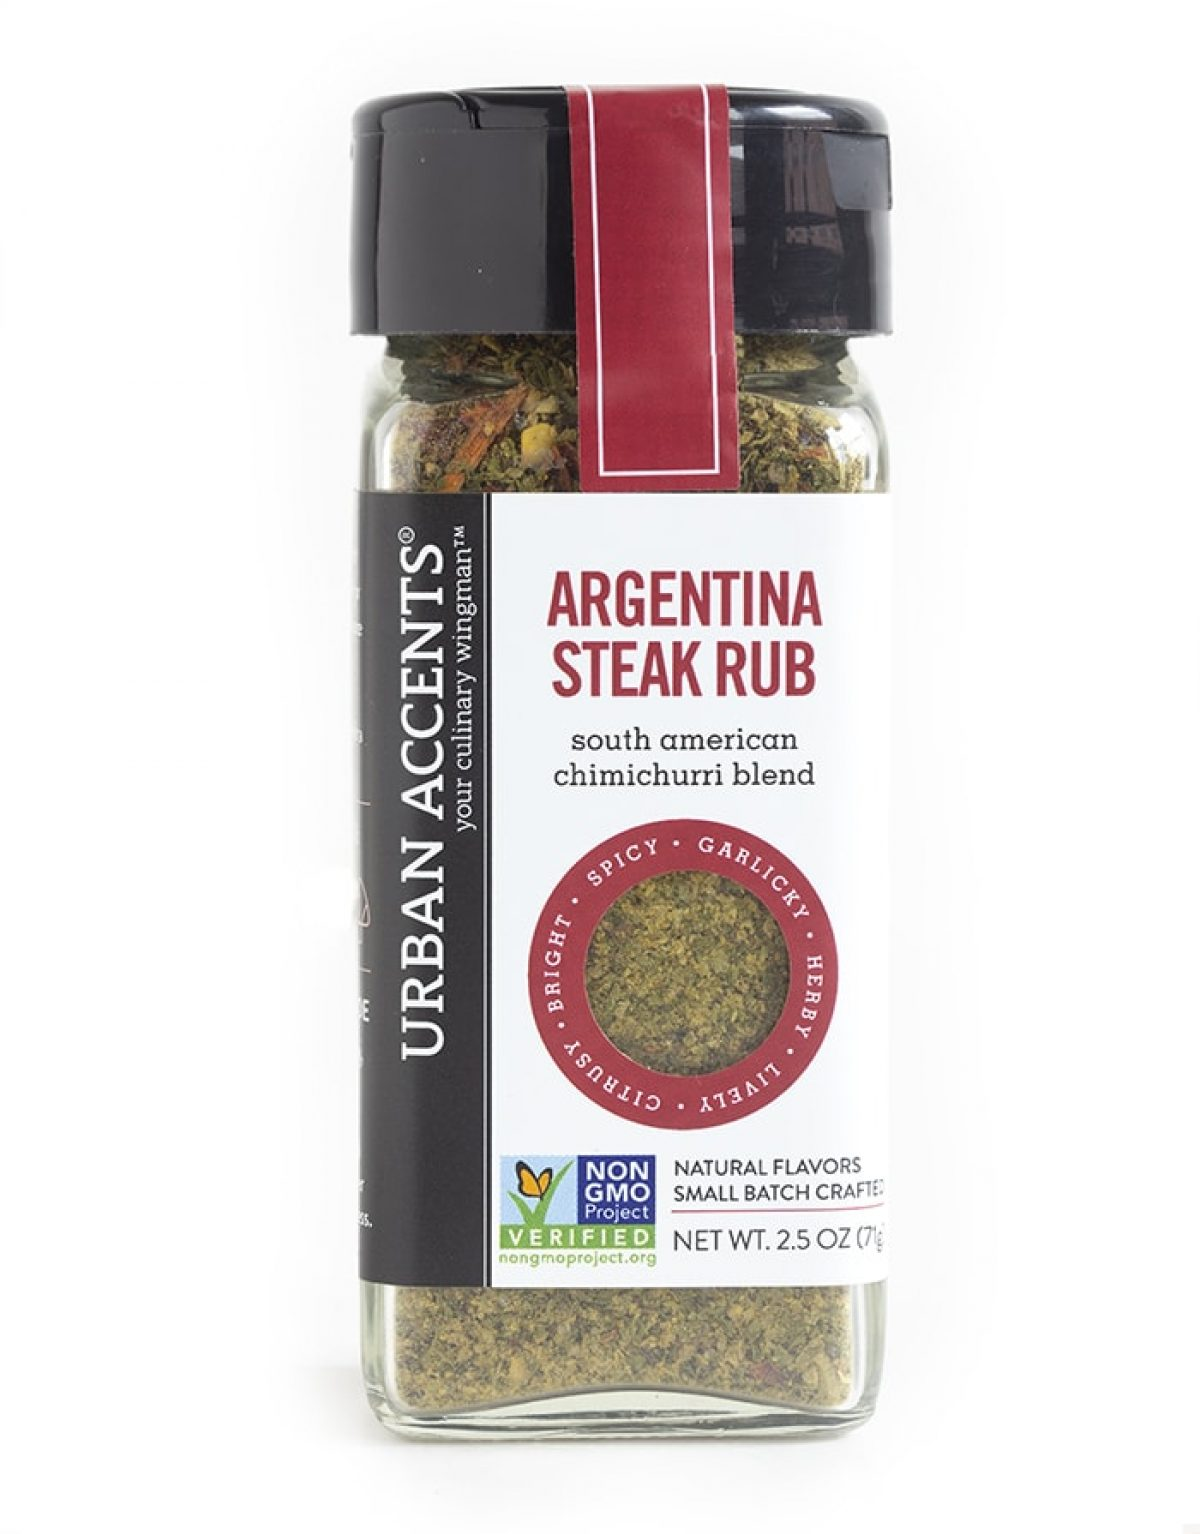 Argentina Steak Rub